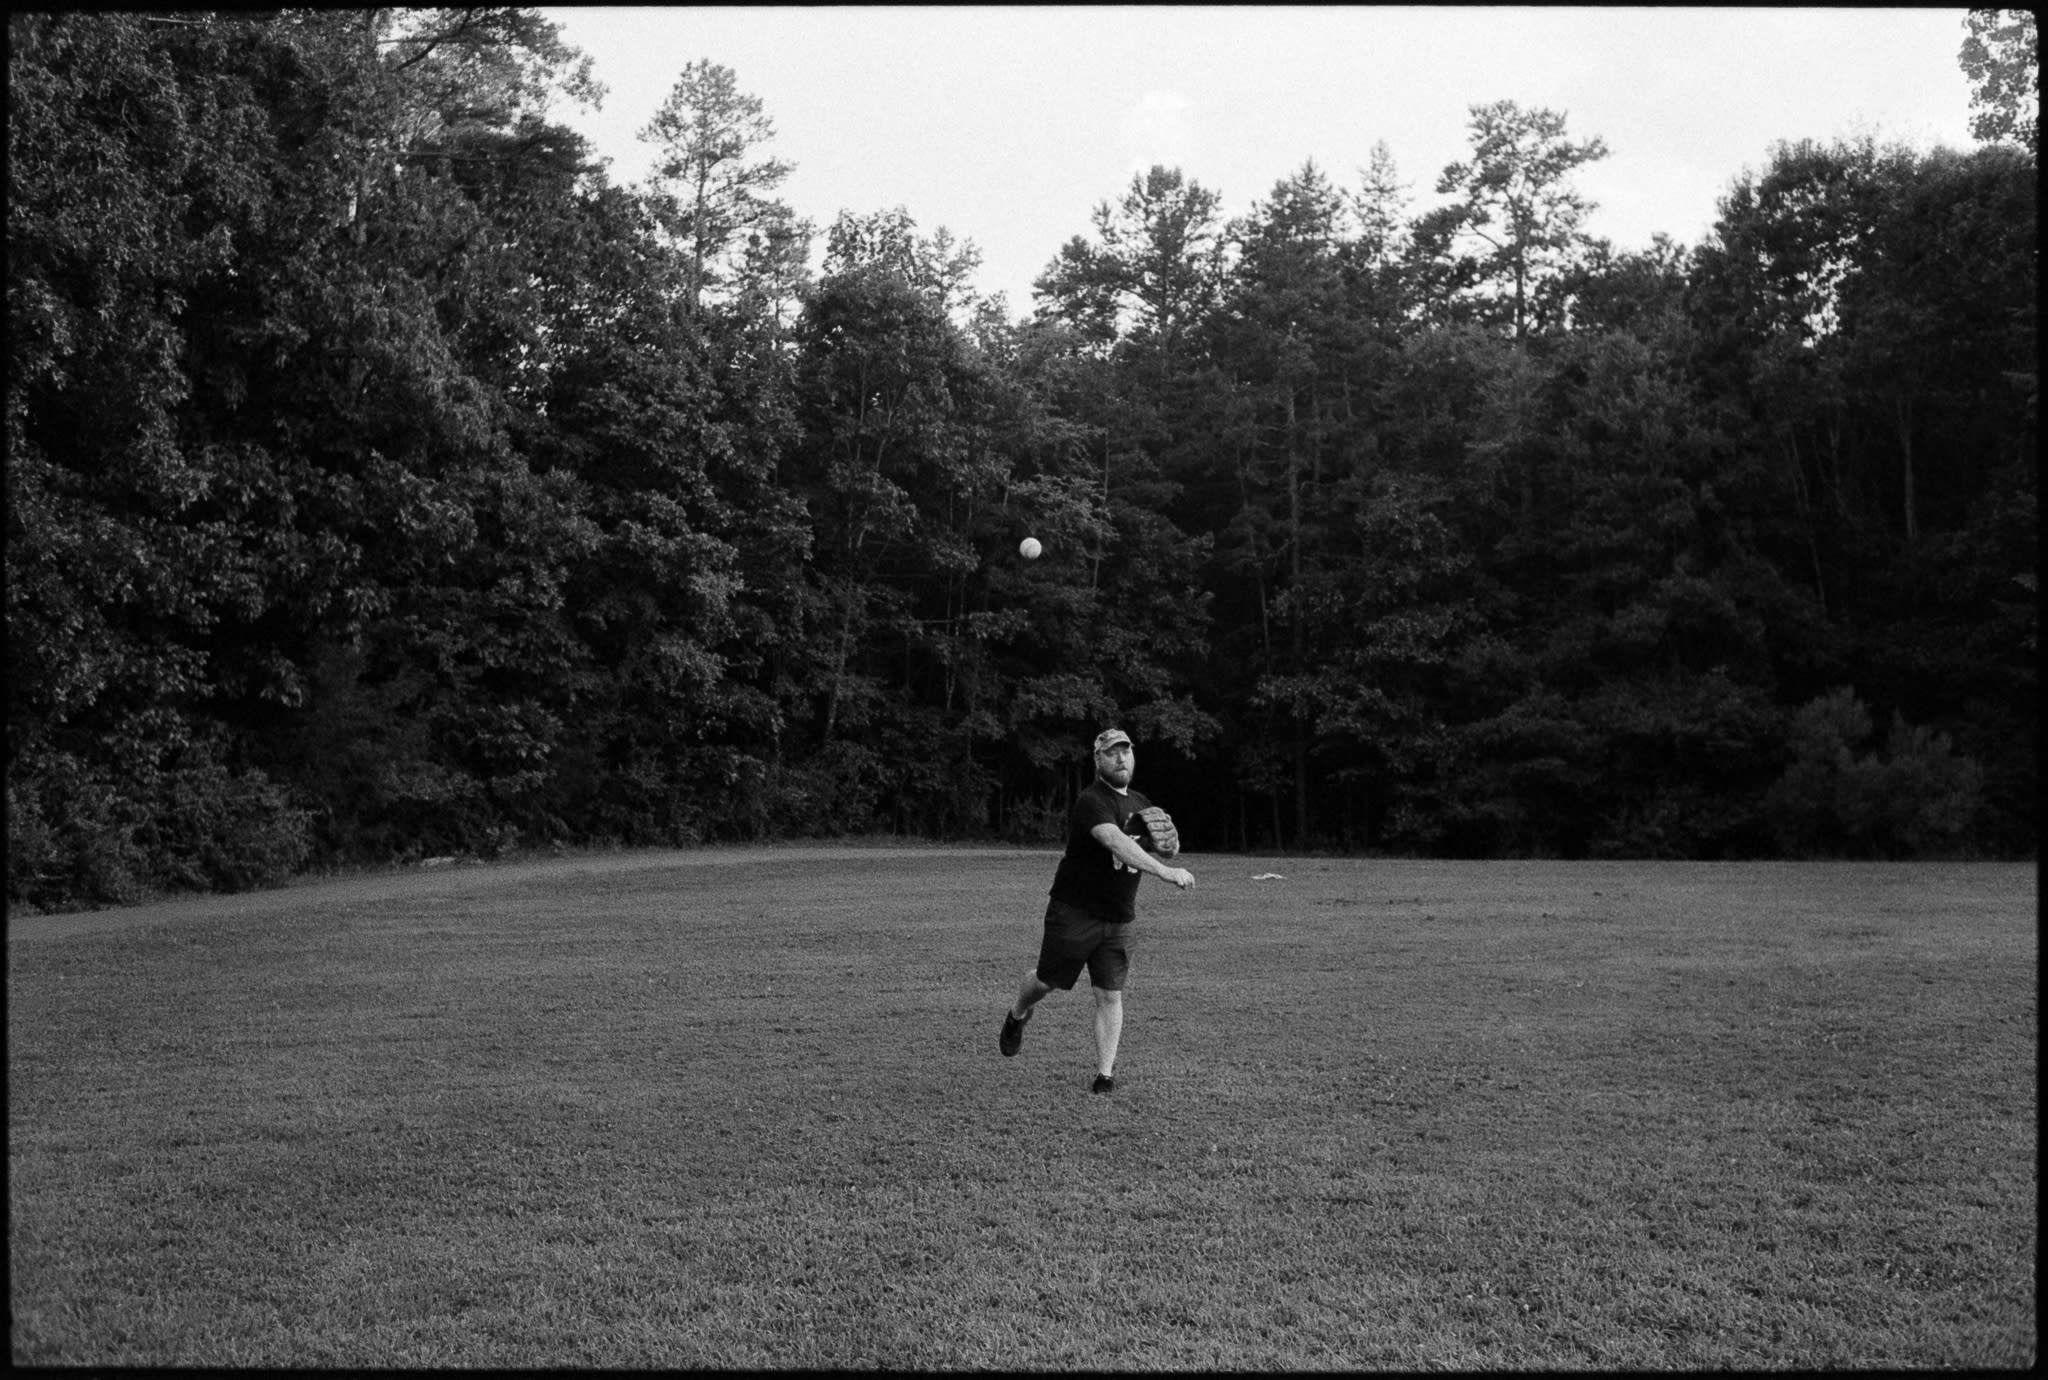 man throwing baseball